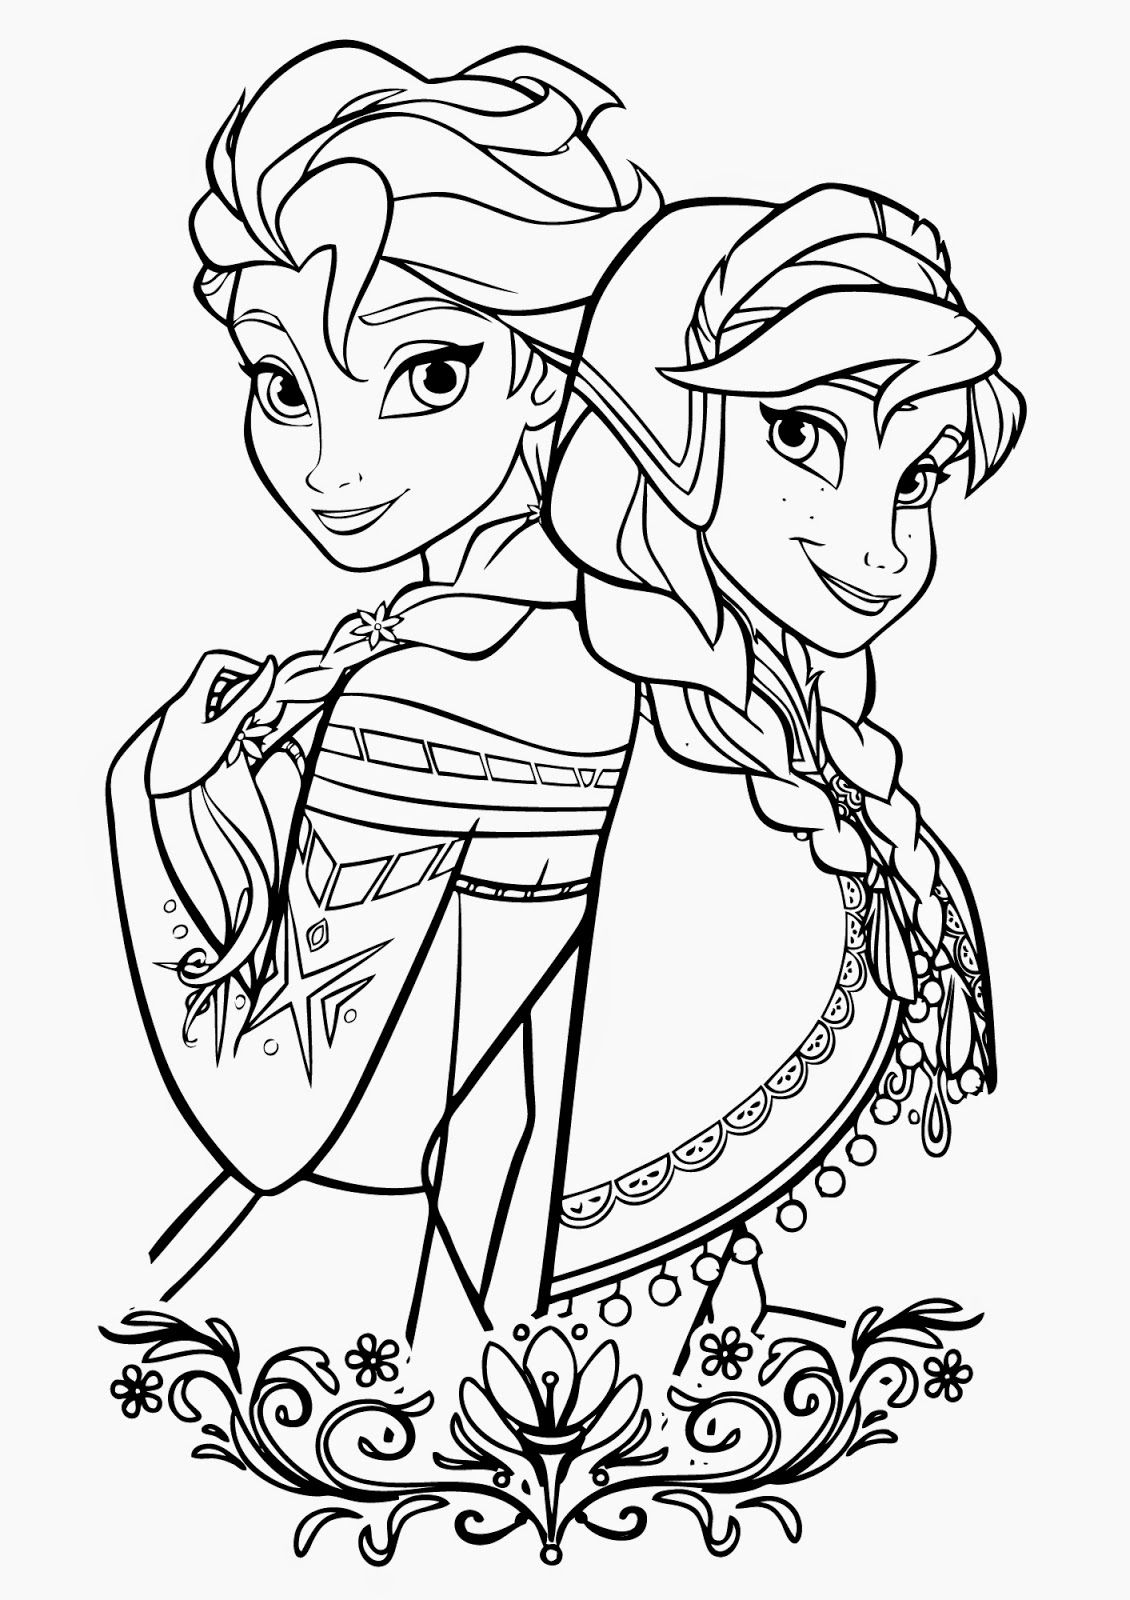 Elsa Freeze Coloring Page Printable Elsa Freeze Coloring Page Free Elsa Freeze Coloring Page